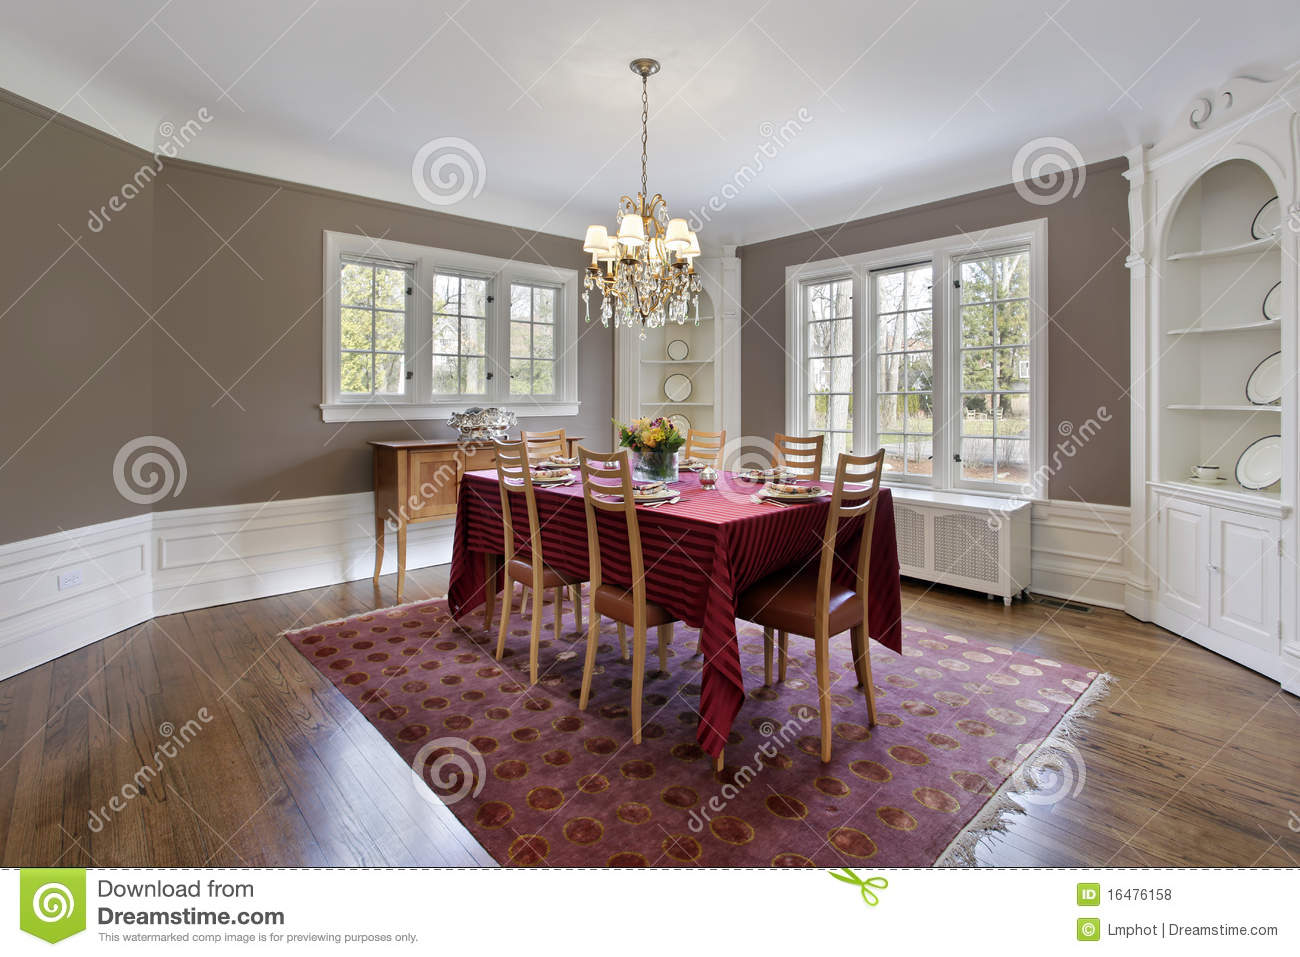 Dining Room With Built-in Cabinets Royalty Free Stock ...